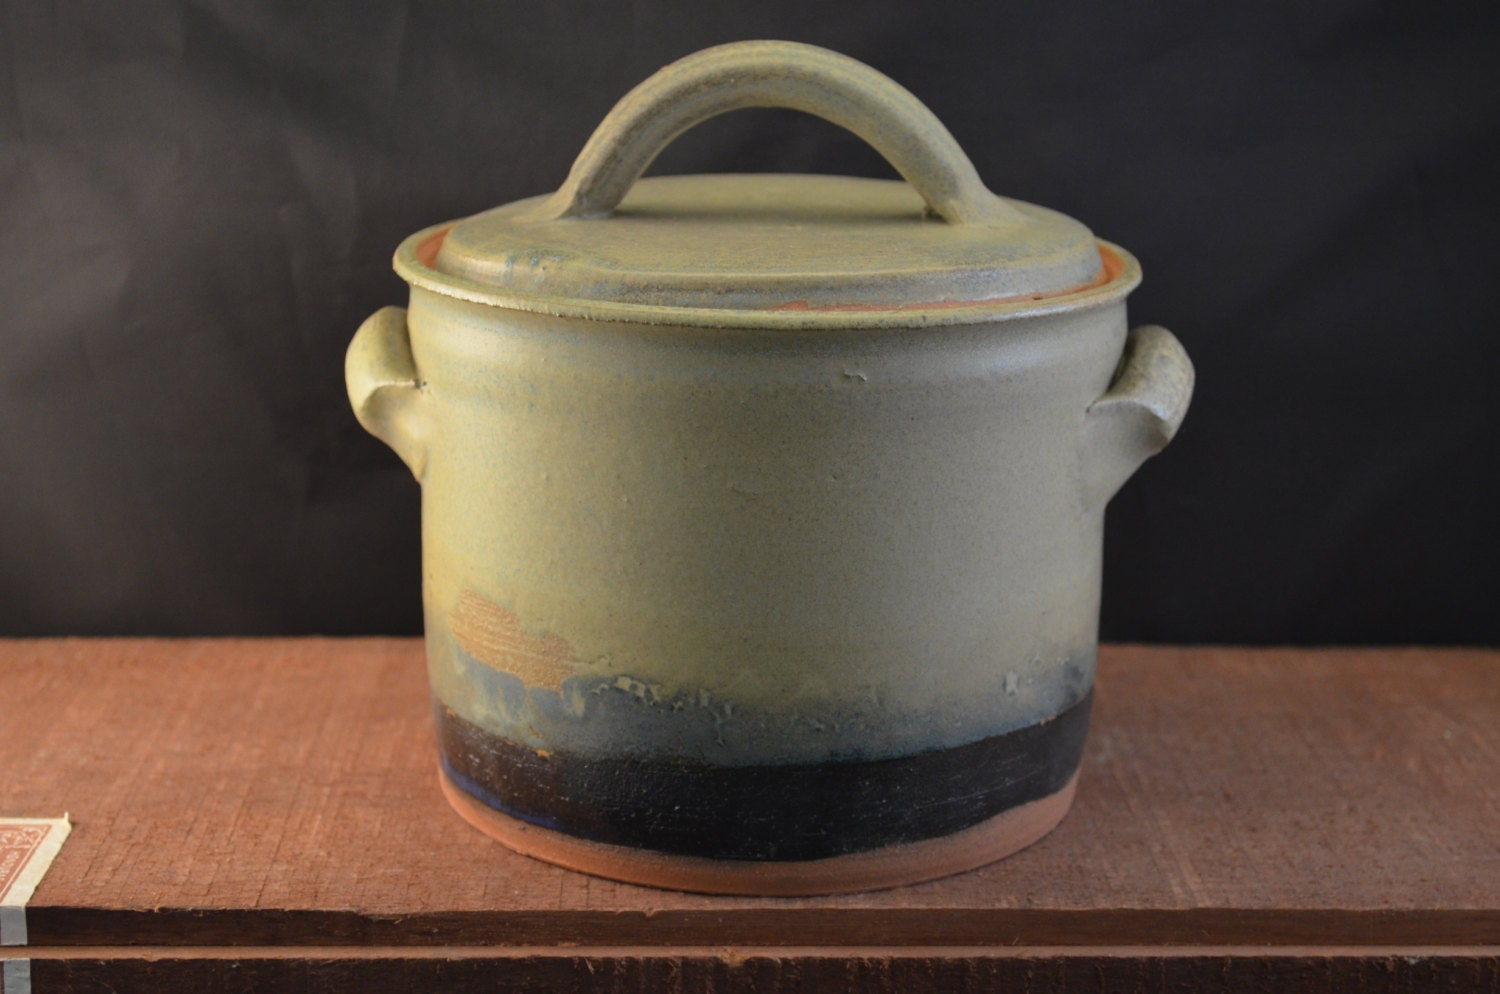 Handmade Ceramic Canister, Cookie Jar, Lidded Kitchen Storage with Handles - Large - Moss Green and Indigo Blue